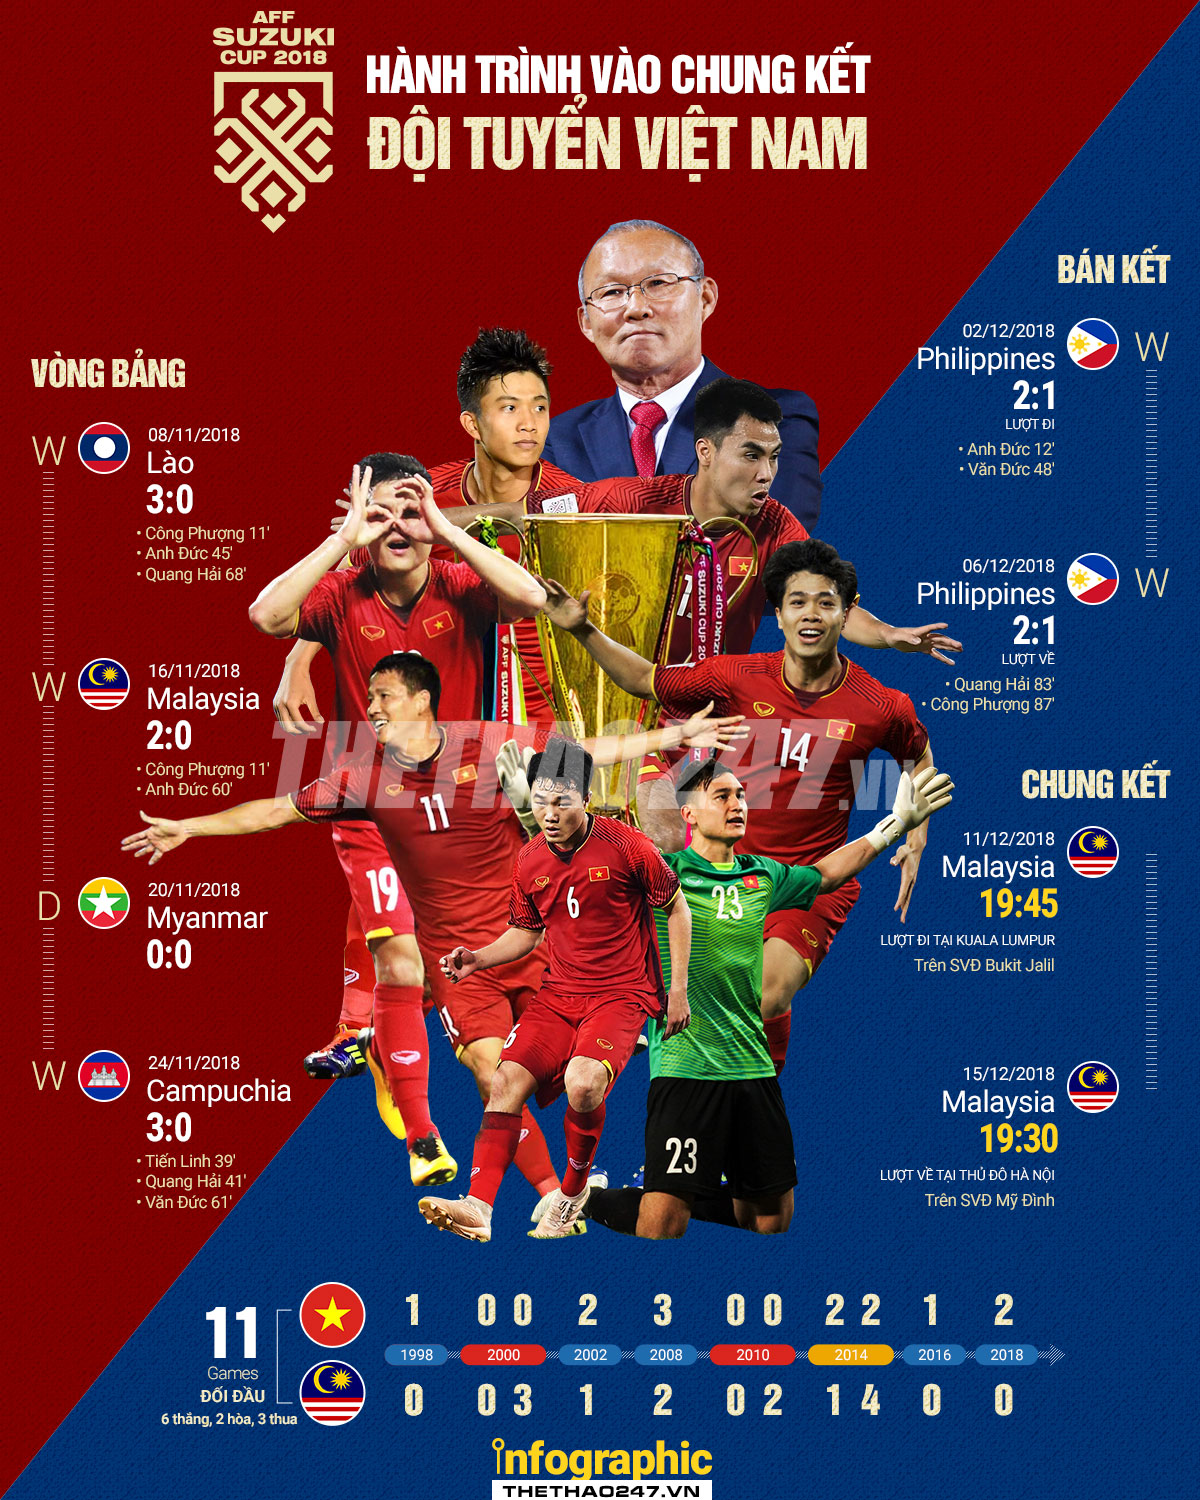 Chung Kết AFF CUP 2018 VIỆT NAM - MALAYSIA